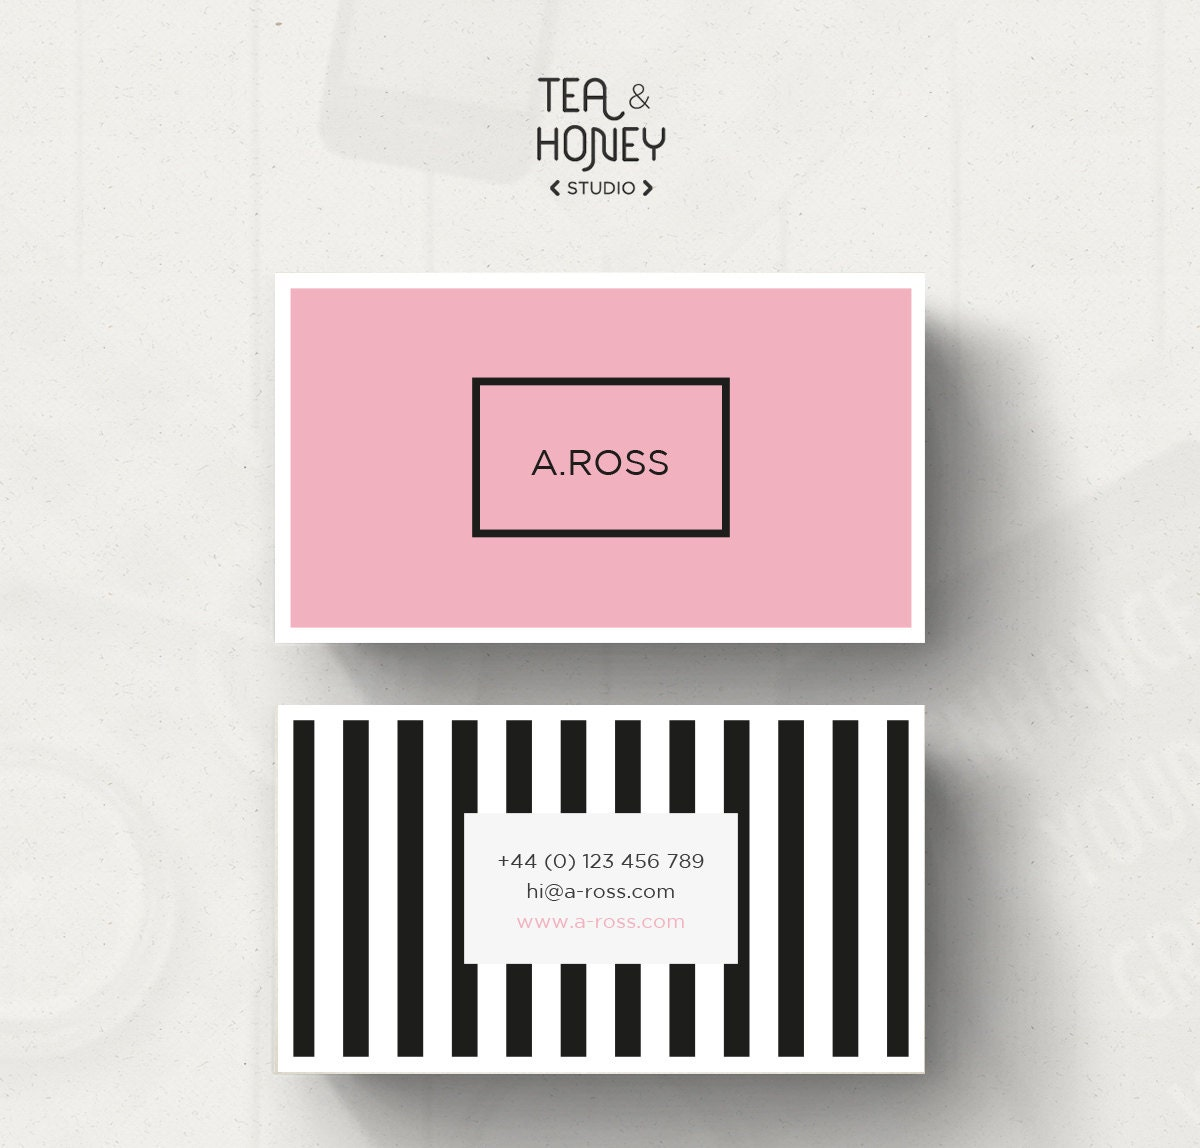 Cool black and pink business cards images business card ideas nice black and pink business cards photos business card ideas fbccfo Image collections